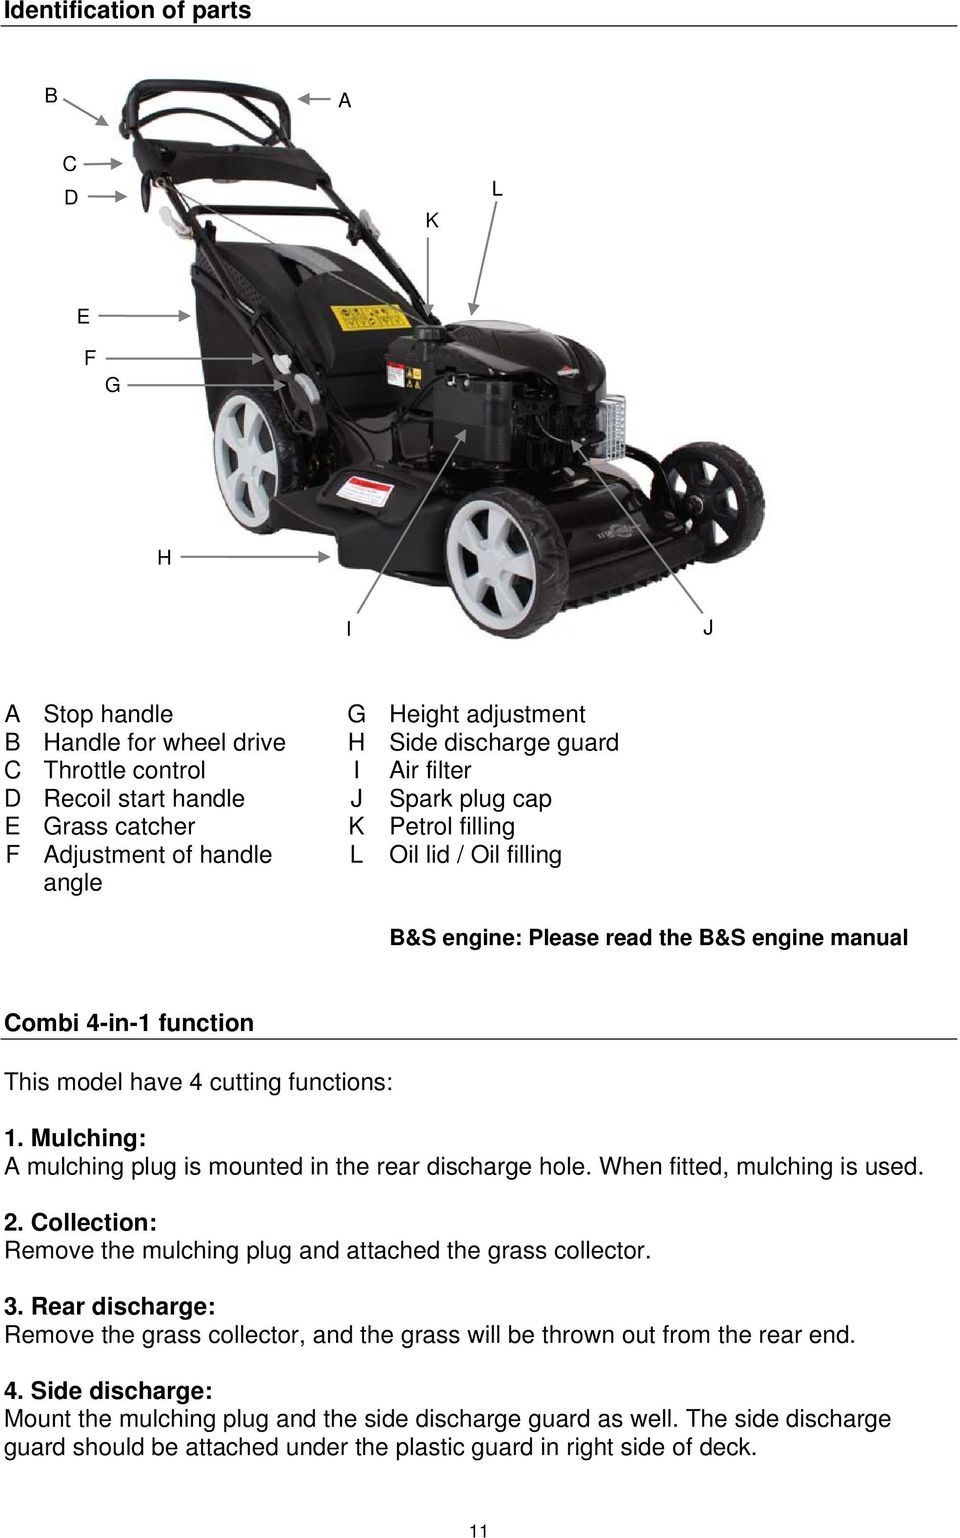 Mulching: A mulching plug is mounted in the rear discharge hole. When fitted, mulching is used. 2. Collection: Remove the mulching plug and attached the grass collector. 3.